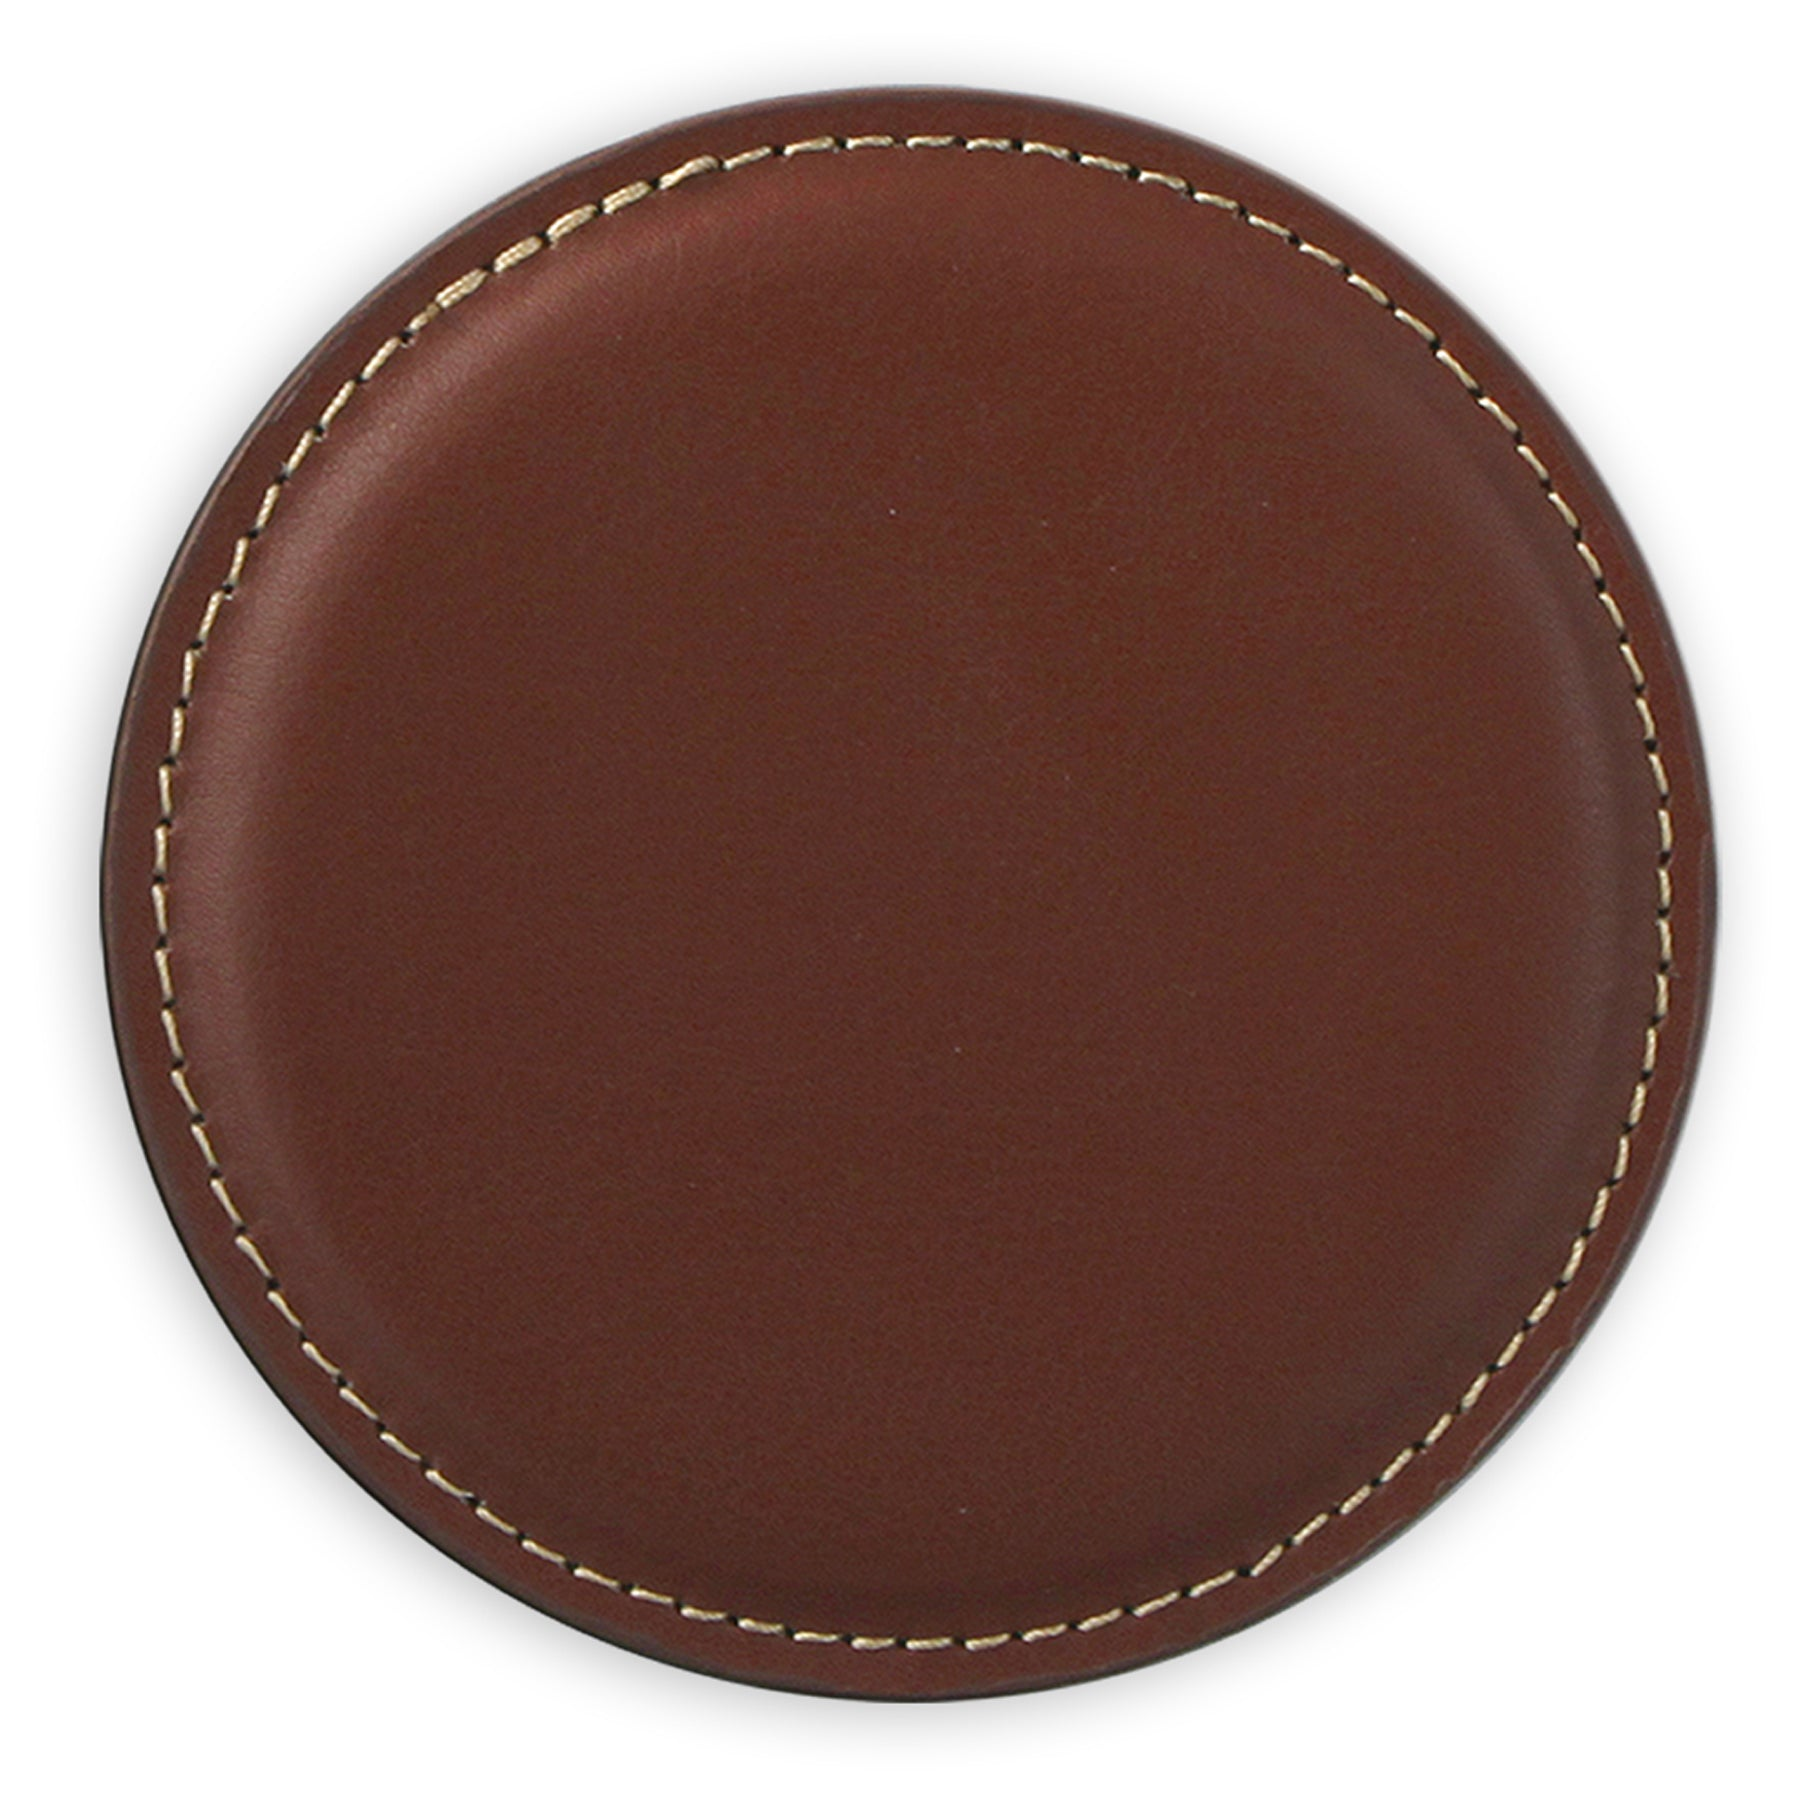 Recycled Debossed Leather Coasters